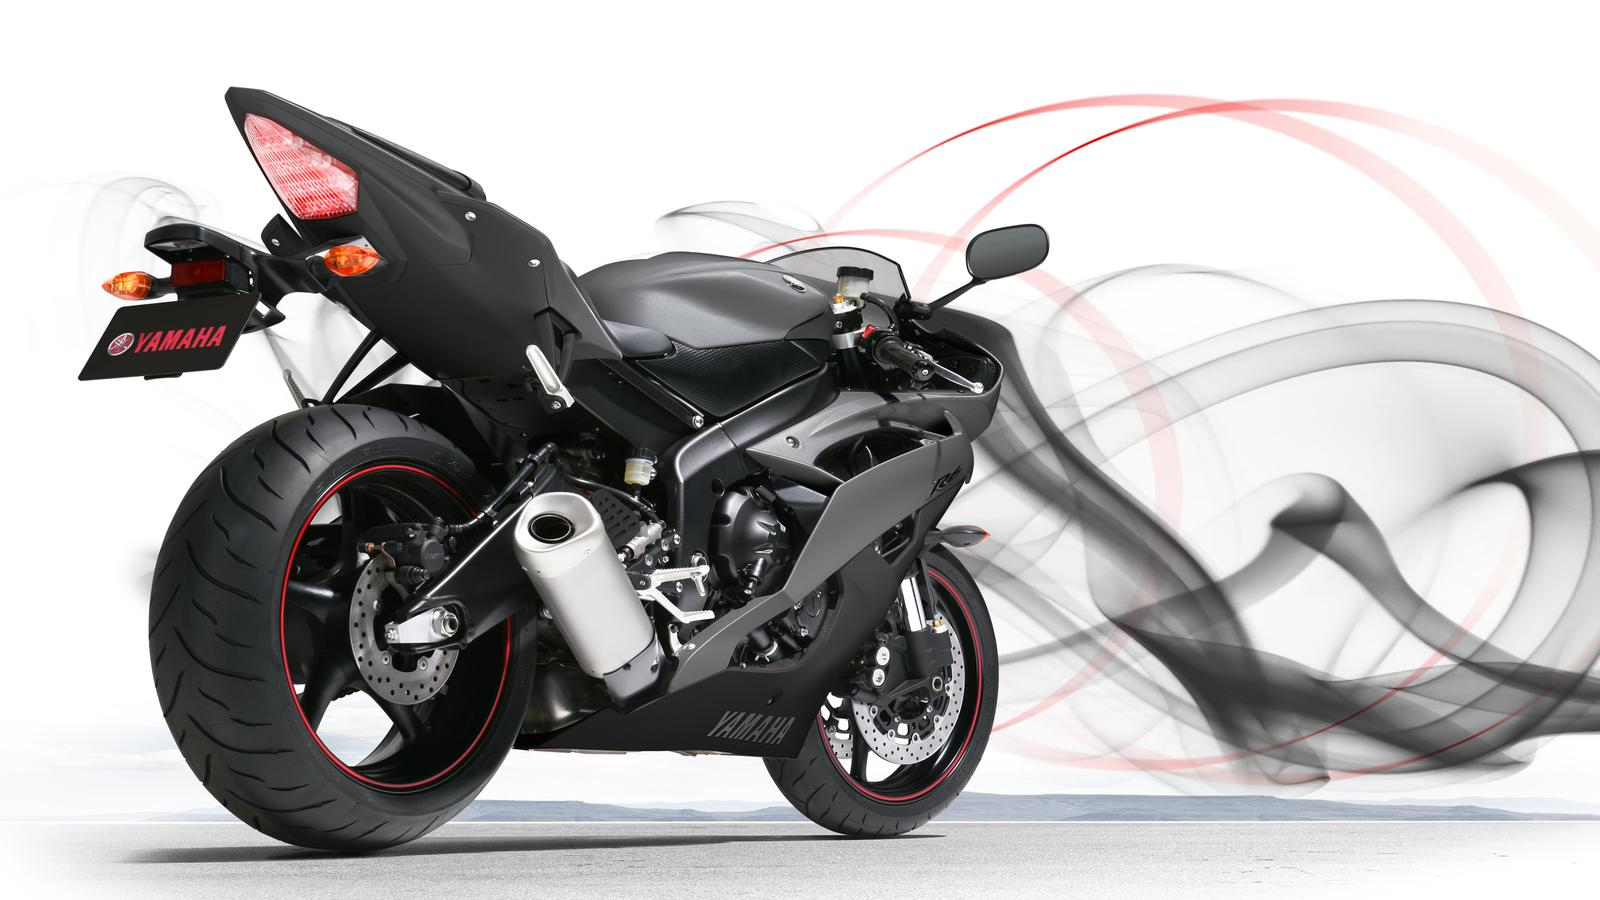 Yamaha R6 Wallpaper 30826 Hd Wallpapers Background 1600x900